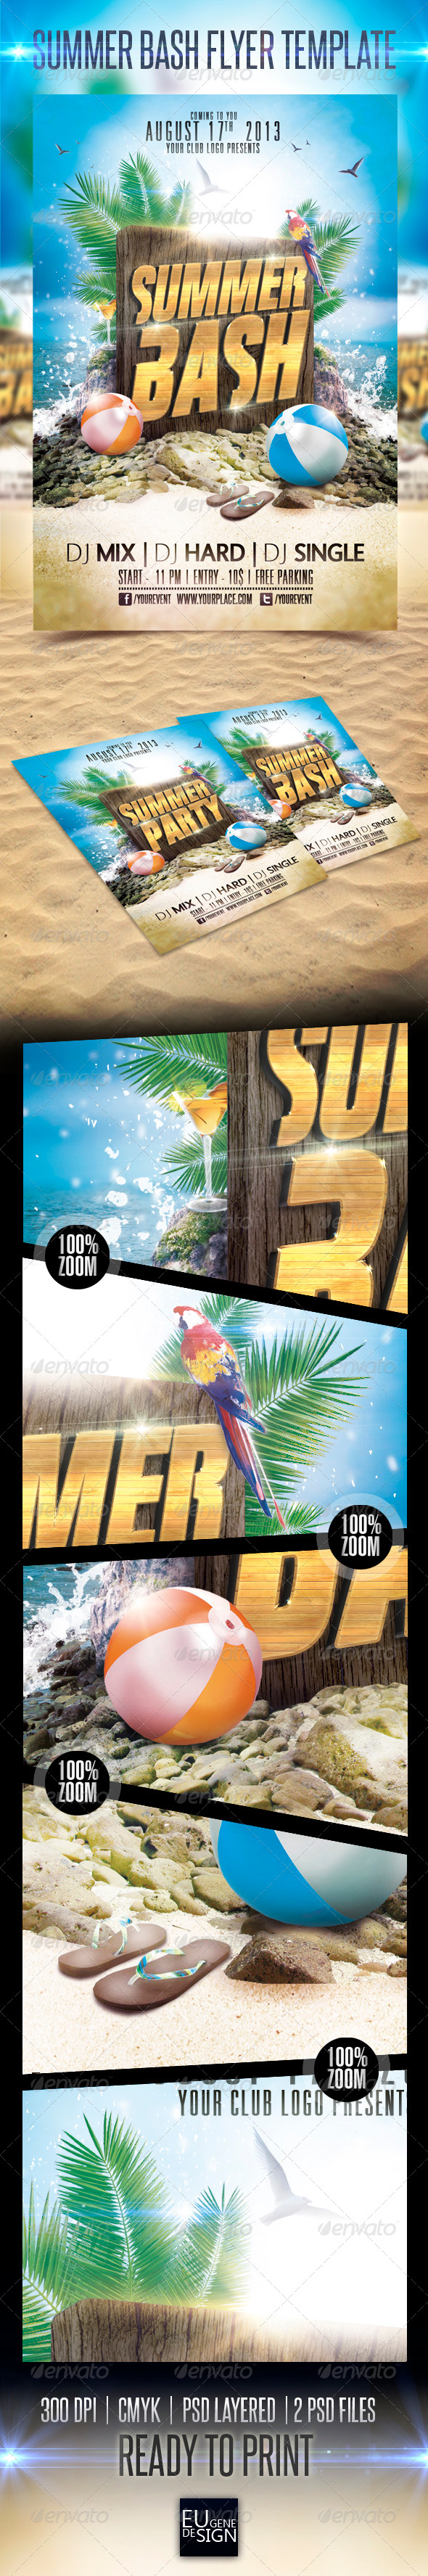 Summer Bash Flyer Template - Clubs & Parties Events